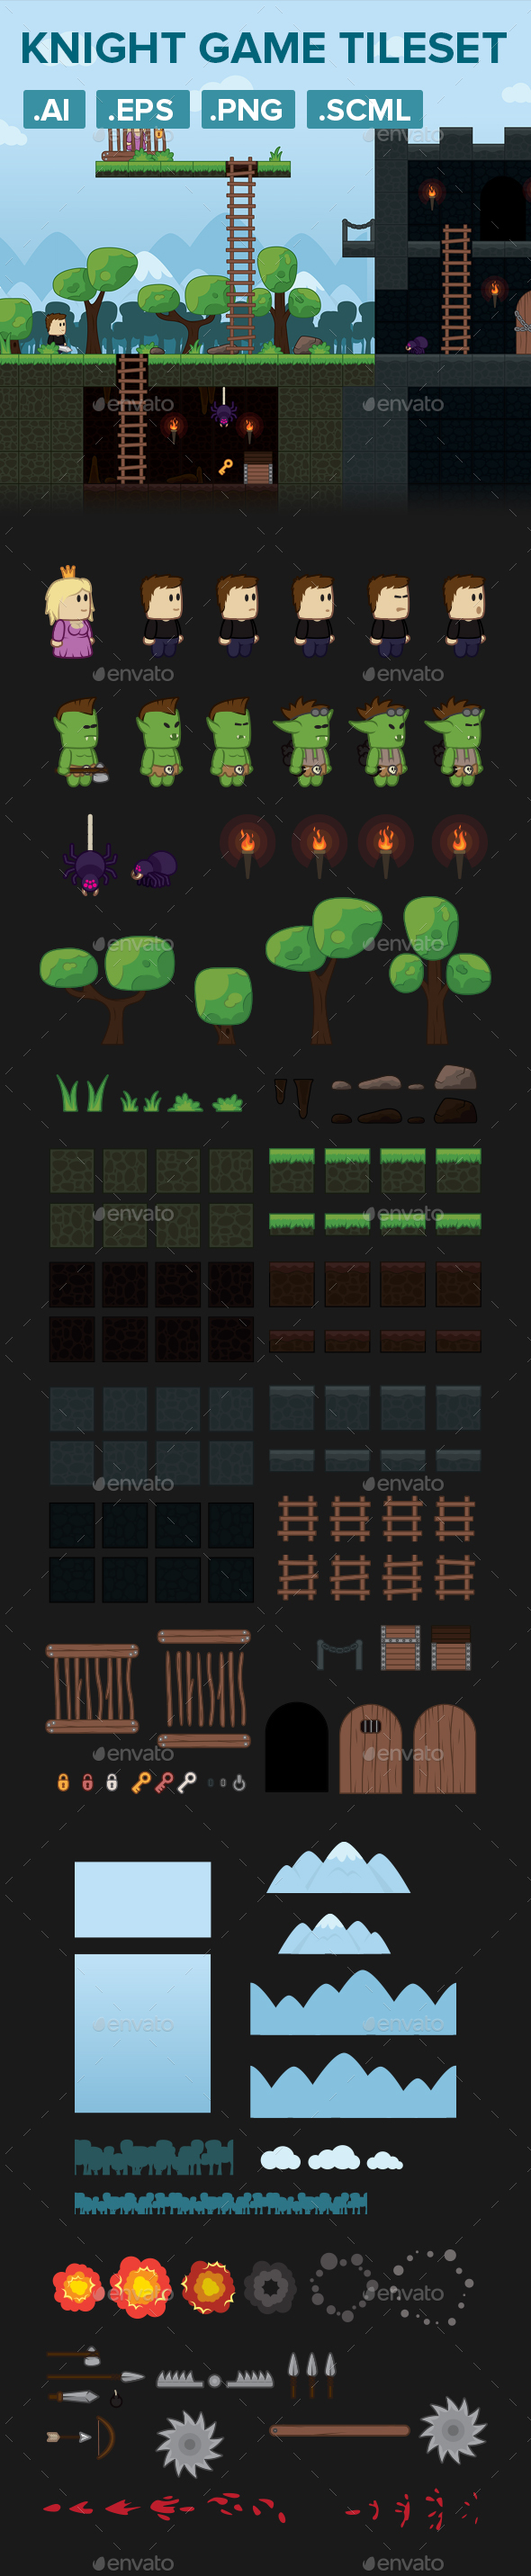 Warrior Platformer Game Tileset and Assets (Game Kits)